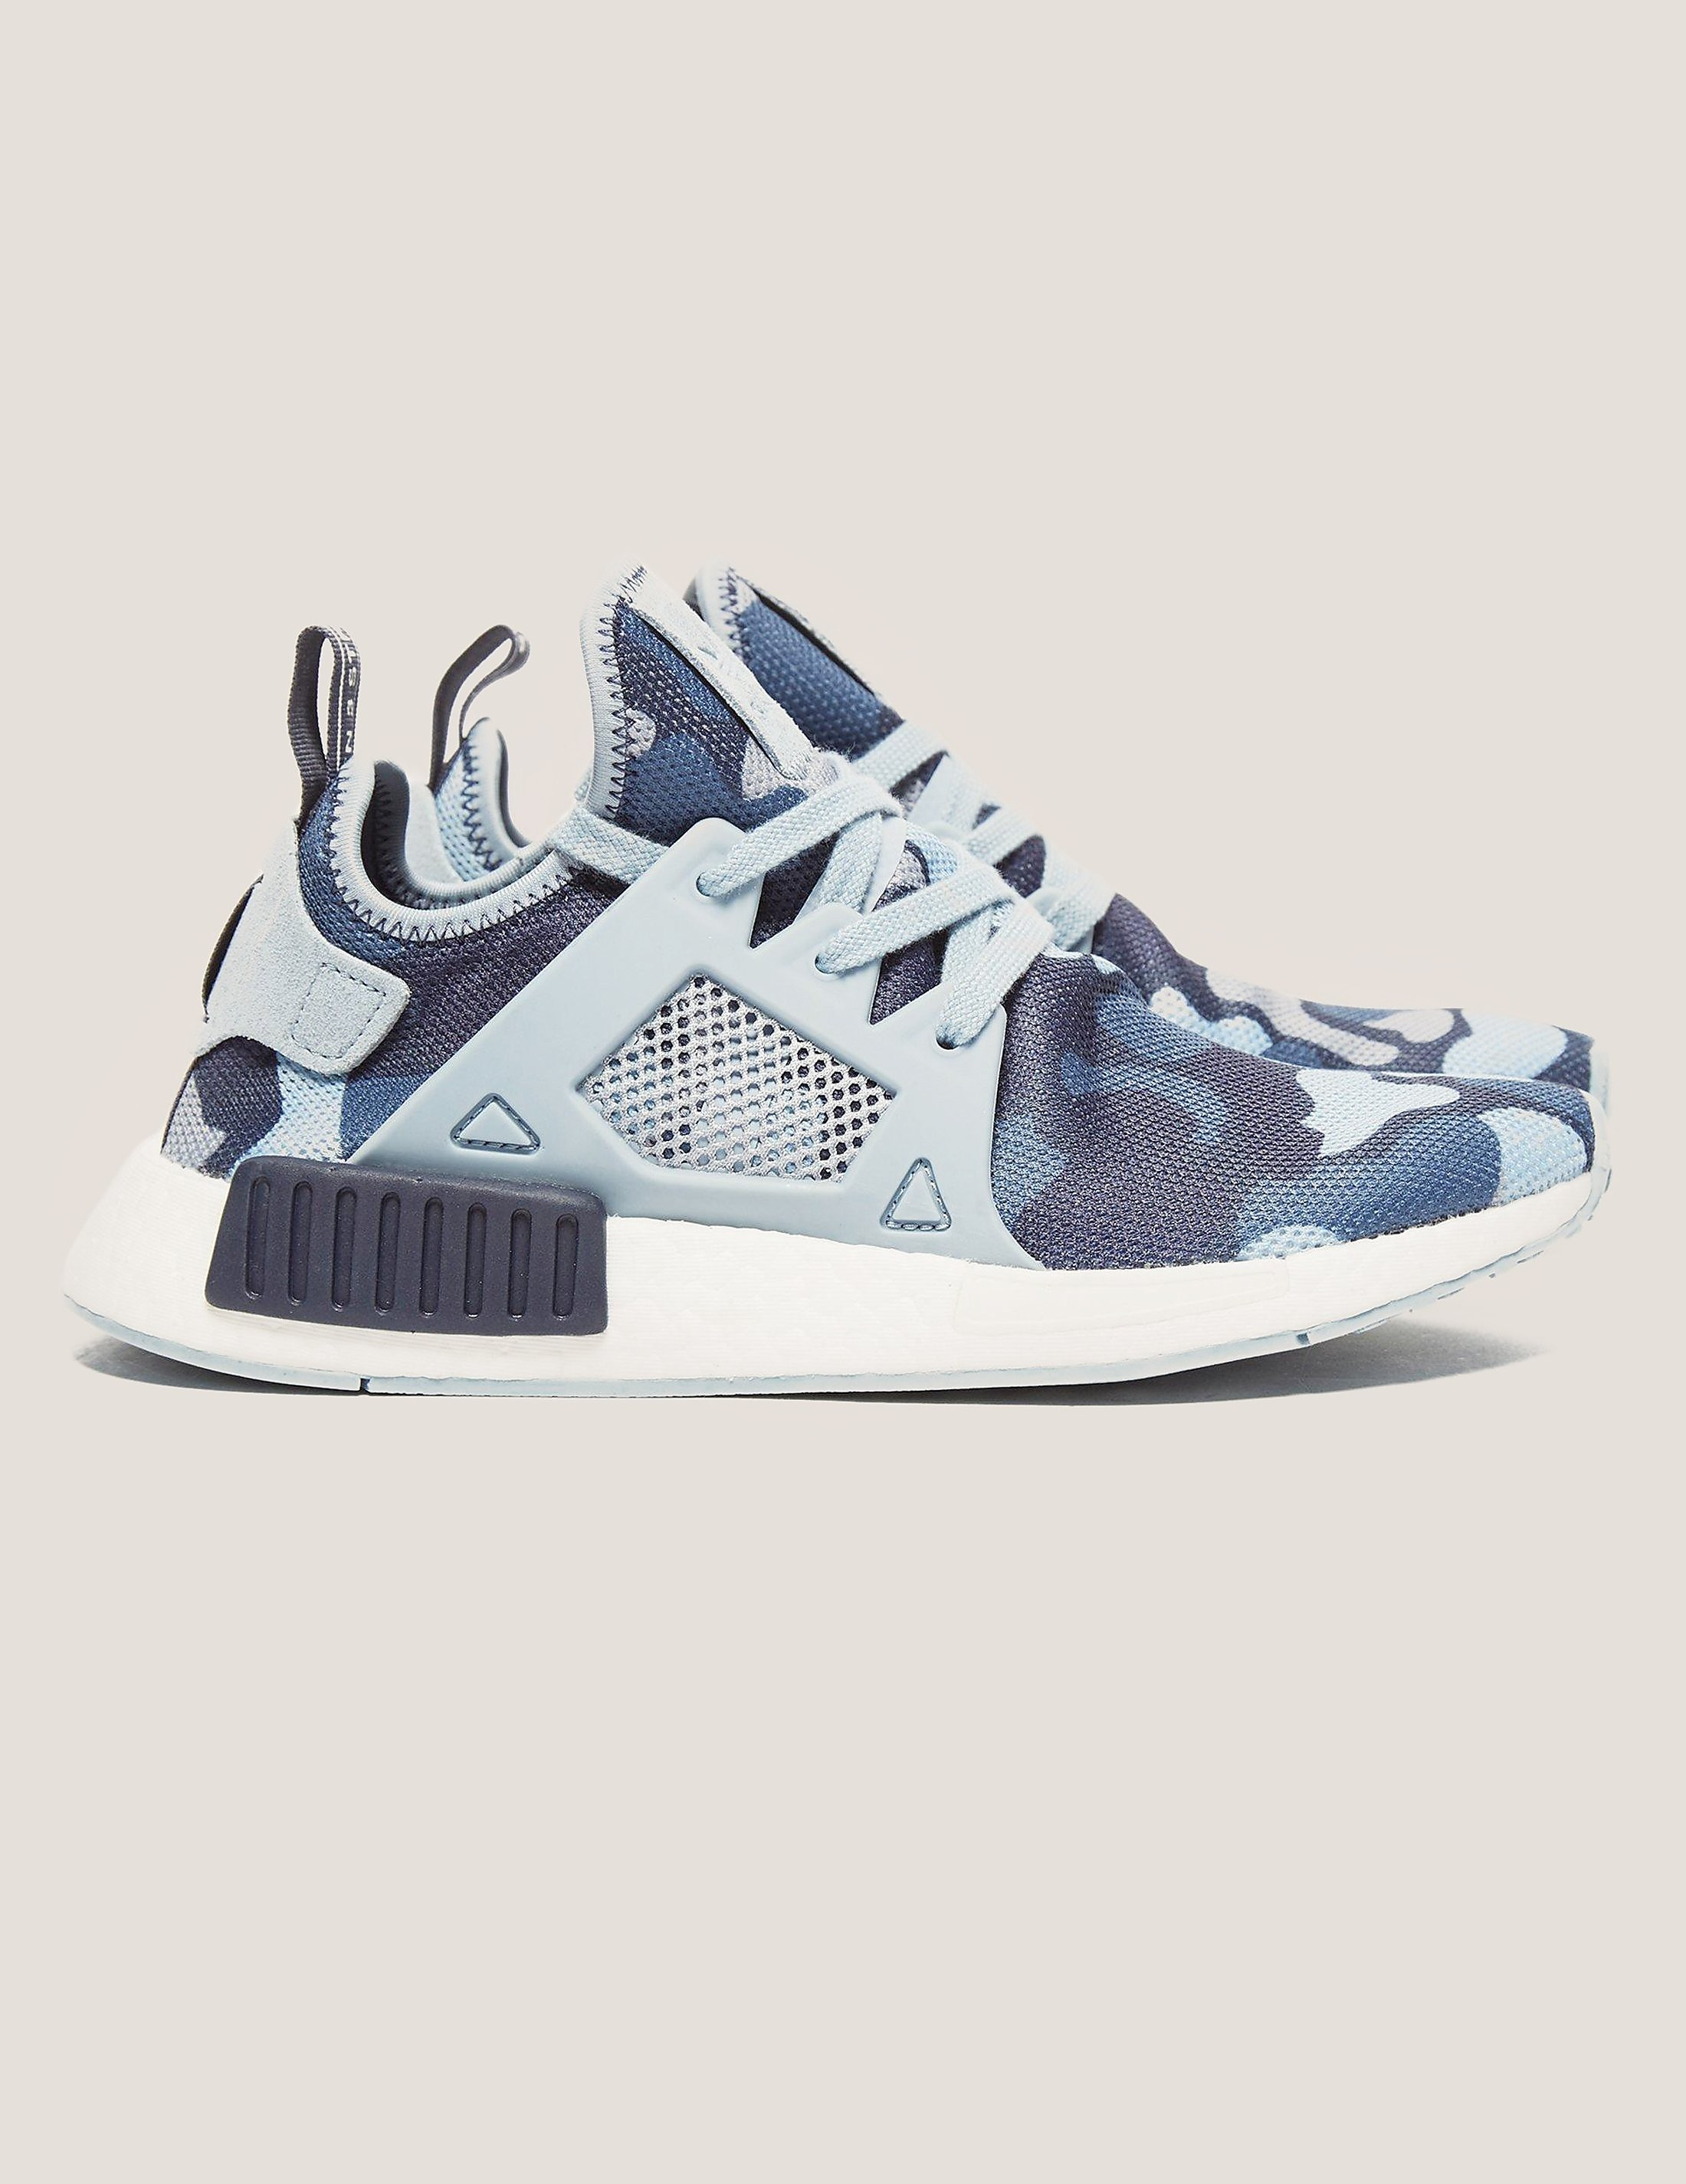 adidas Originals NMD XR1 Duck Camo